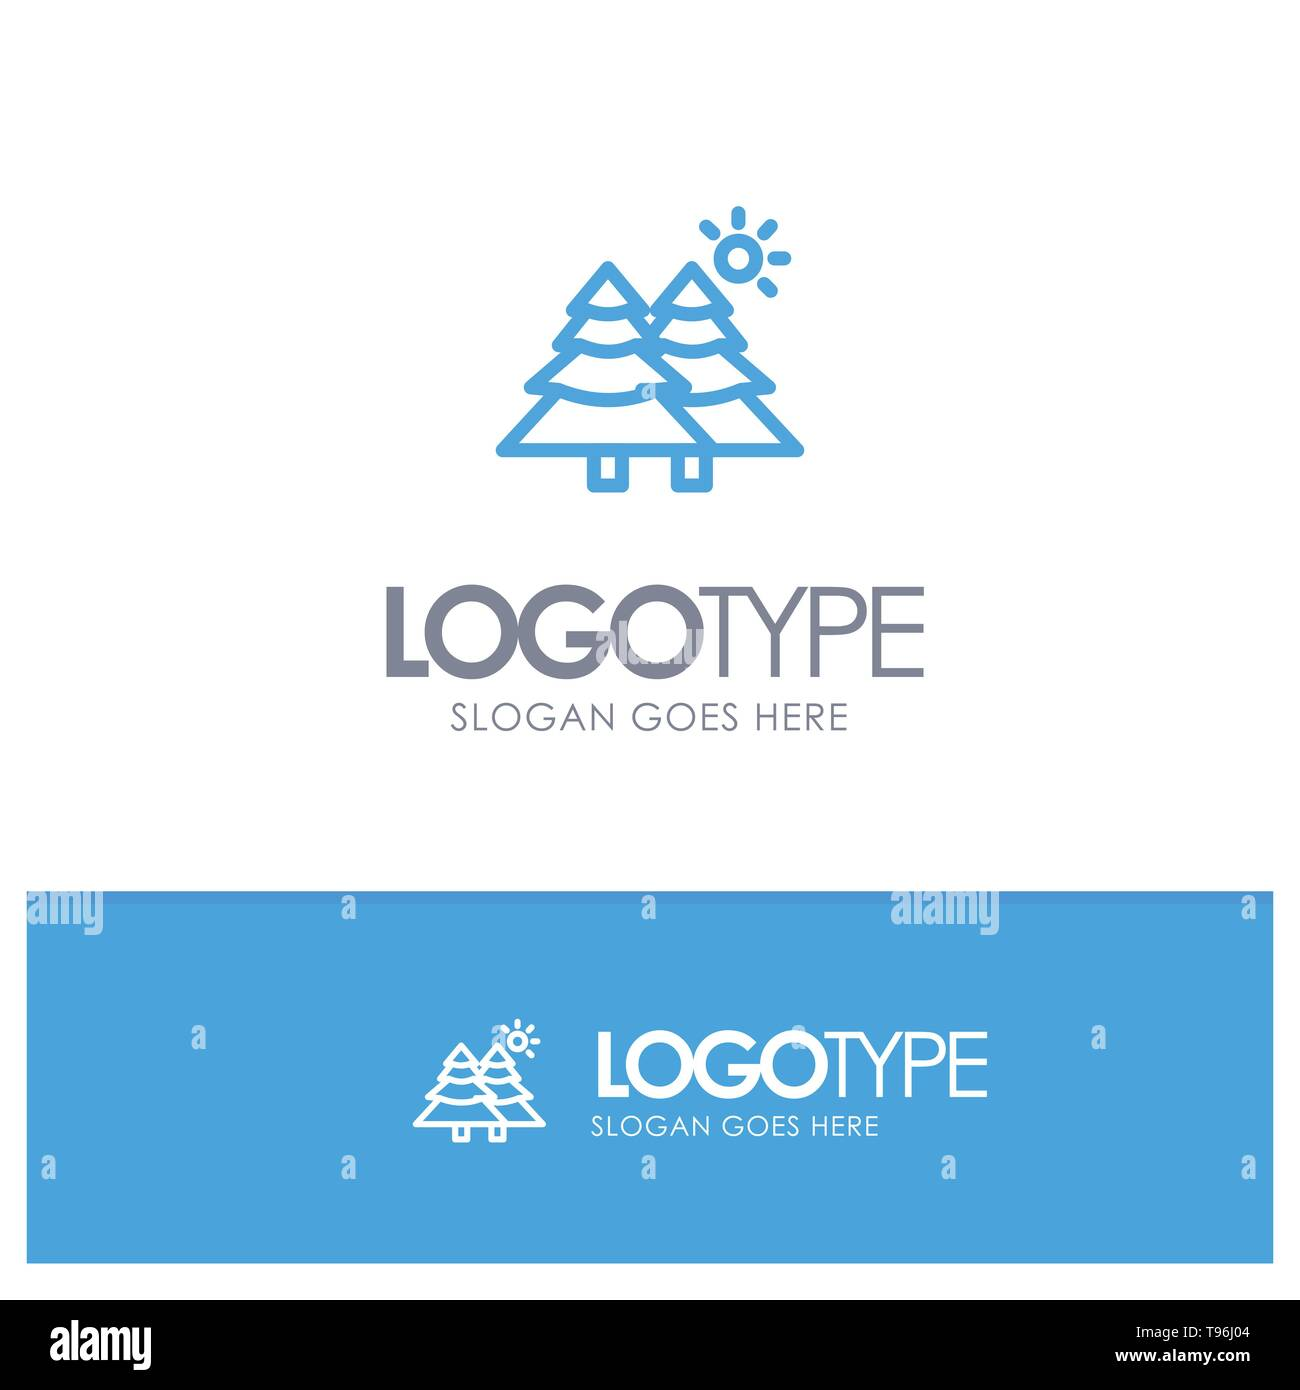 Fir, Forest, Nature, Trees Blue Logo Line Style - Stock Image